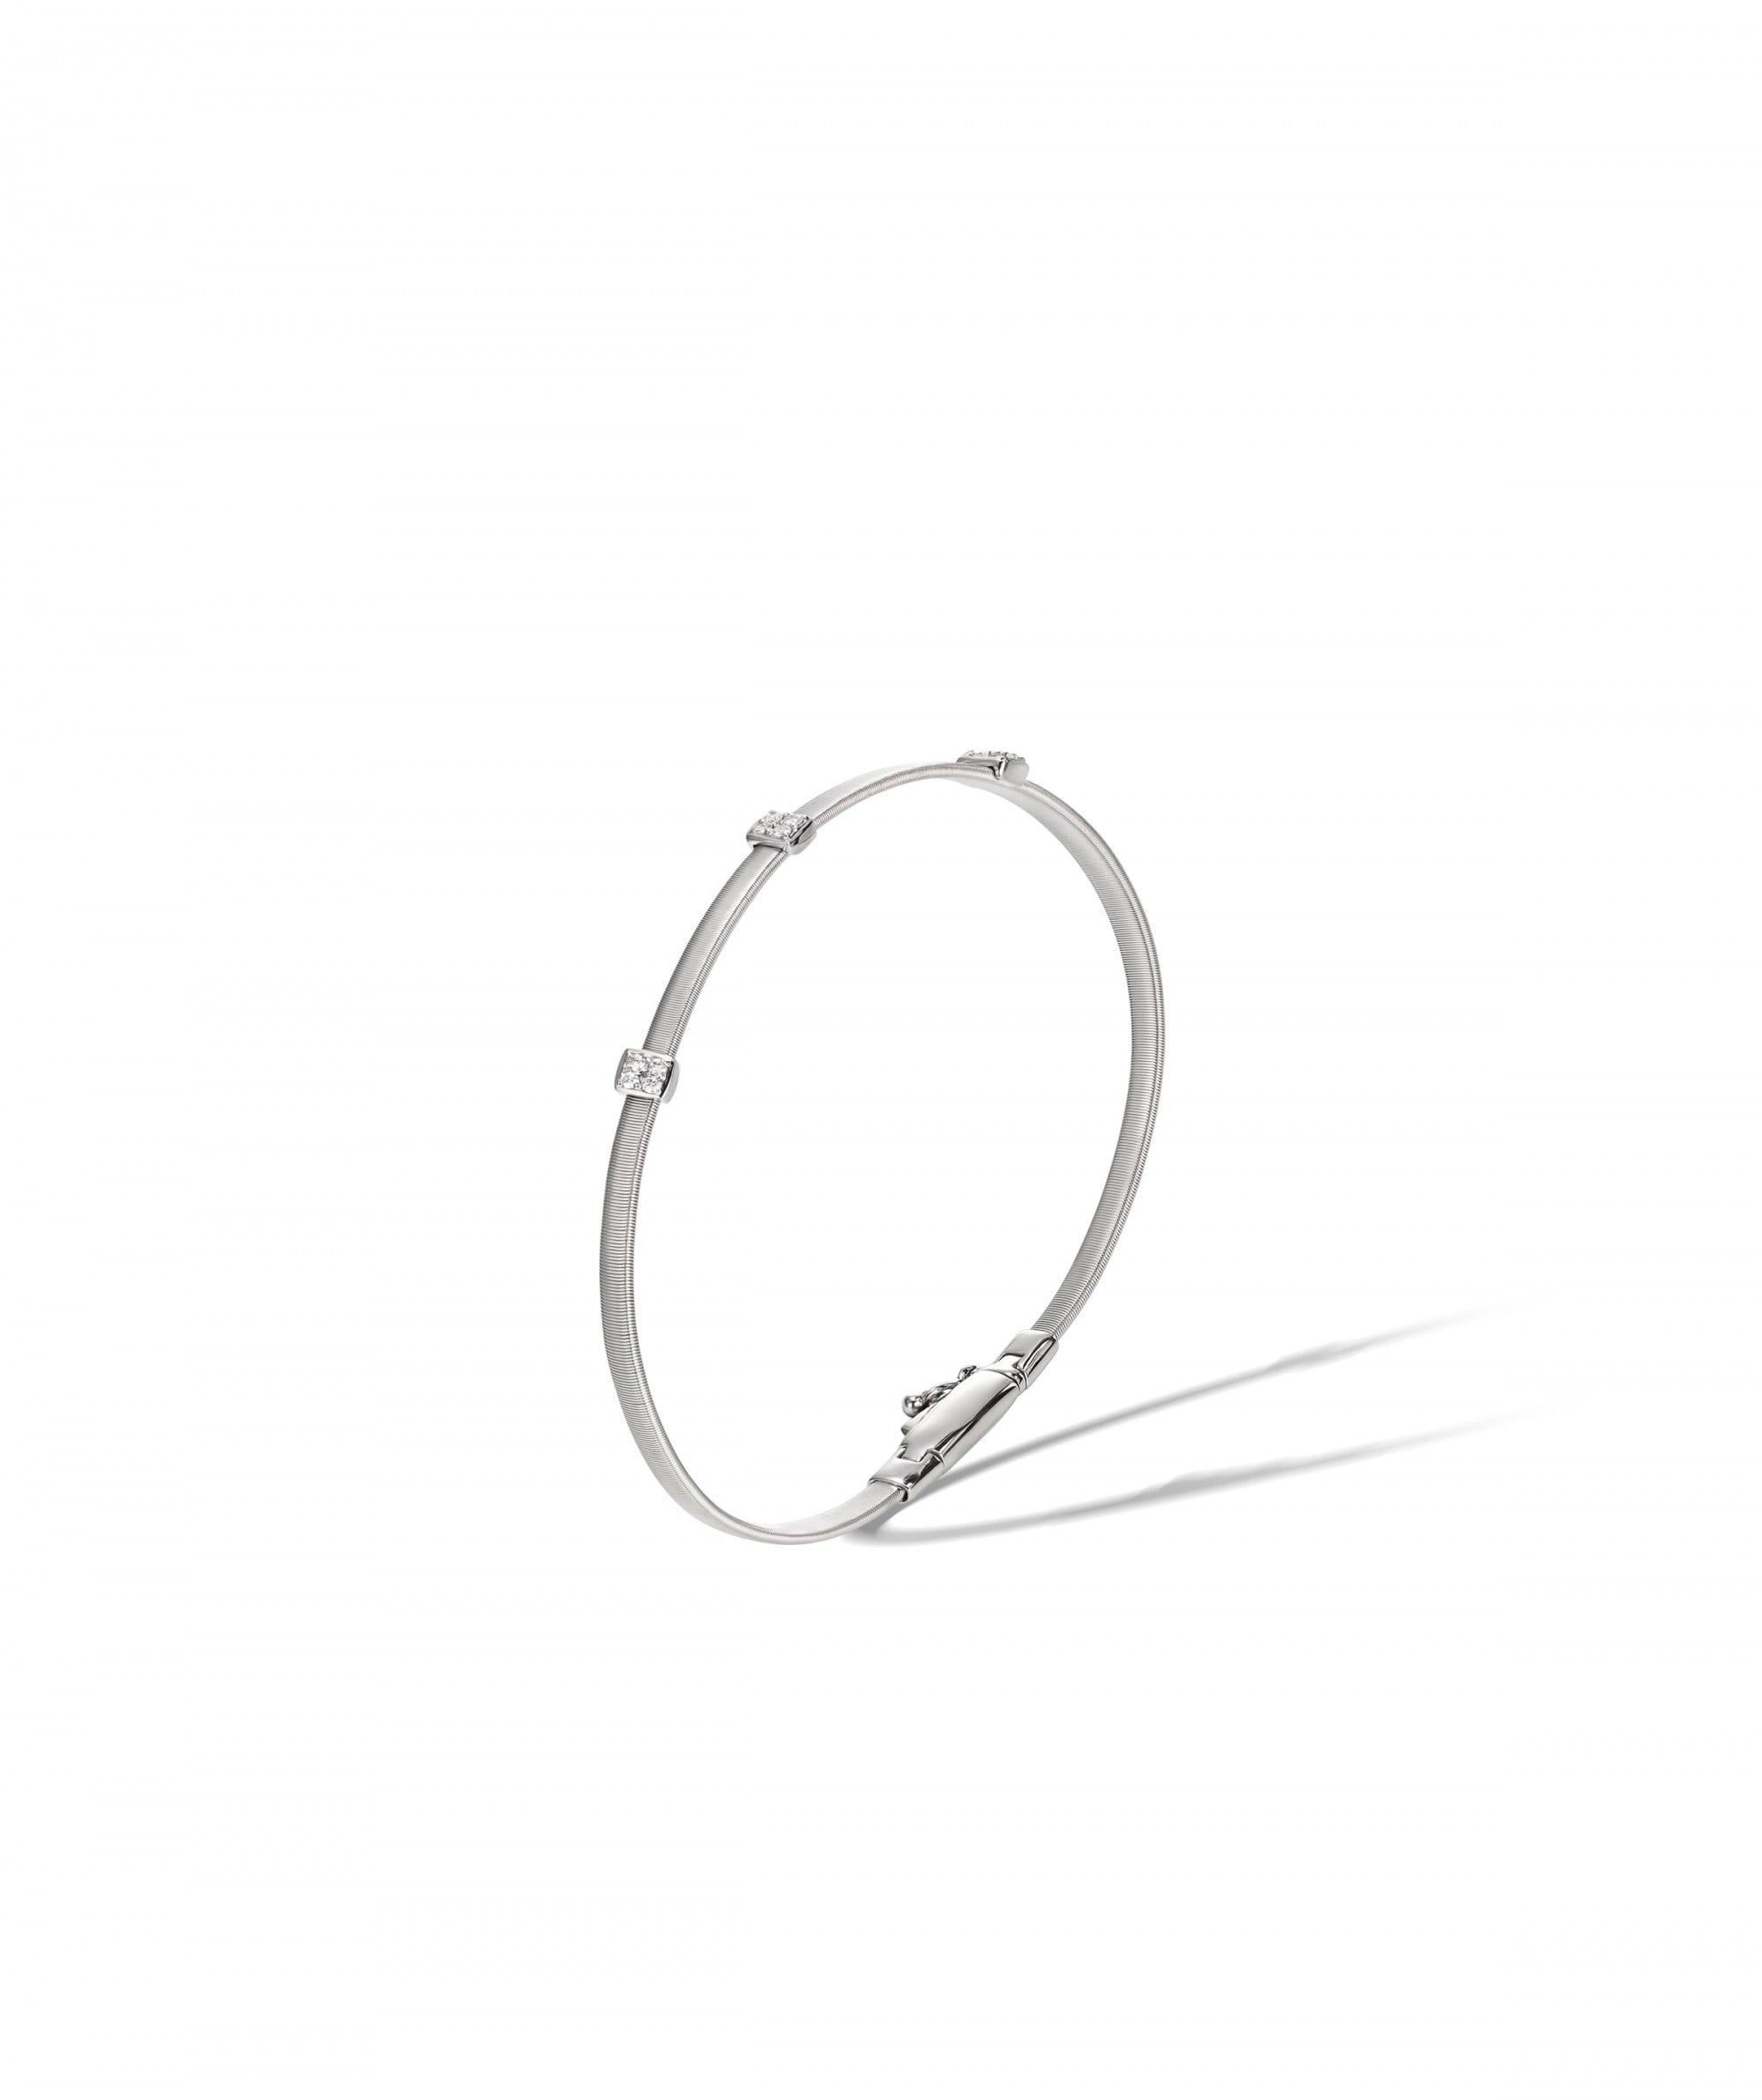 Masai Slender Bracelet in 18k White Gold with 3 Pave Diamond Stations Single Strand - Orsini Jewellers NZ